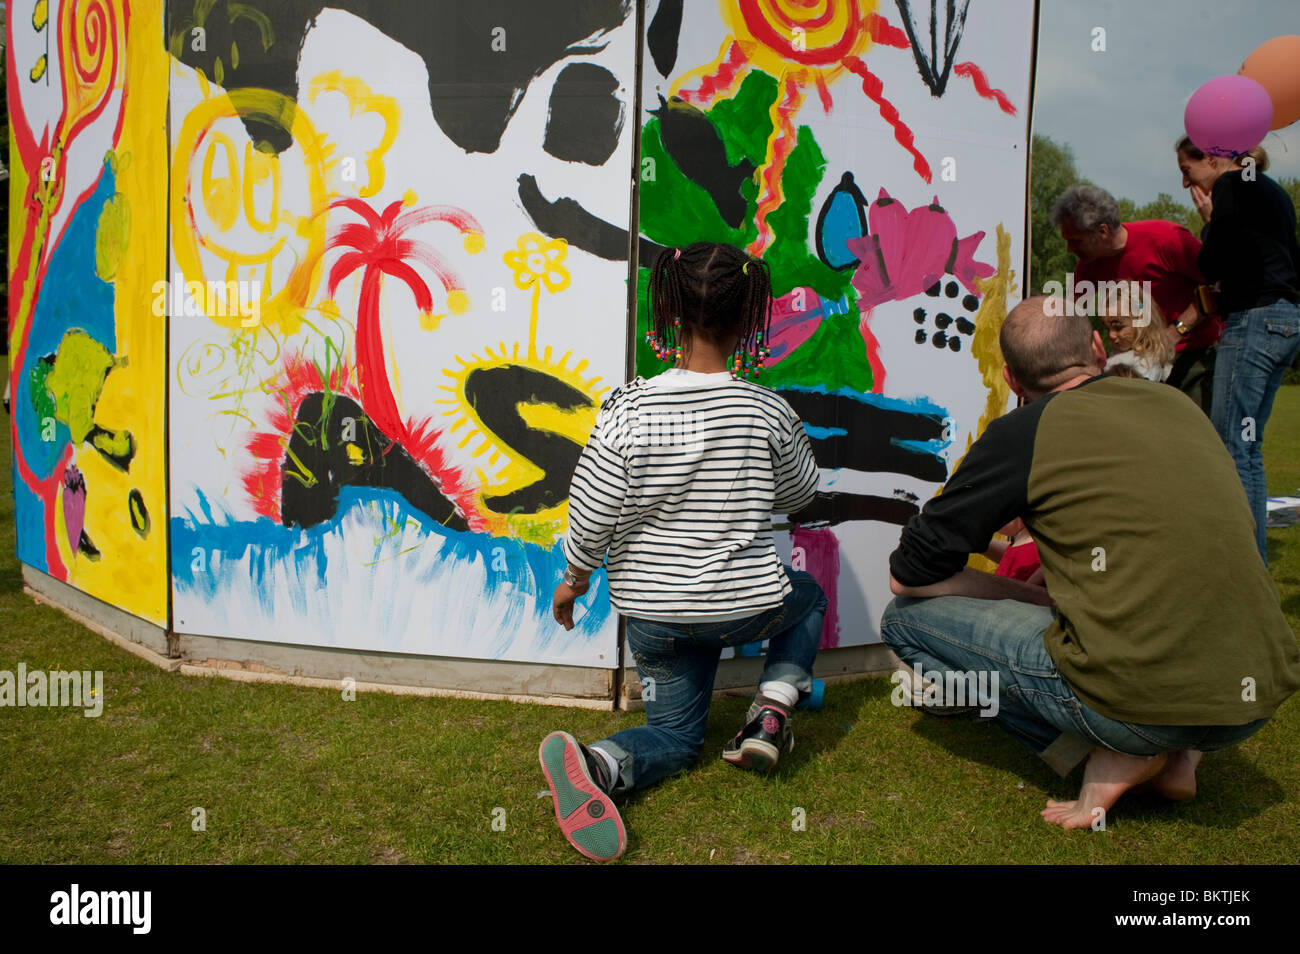 Families at Celebration of World 'Fair Trade' Day, with Children Painting Wall, on Lawn of La Villette Park, - Stock Image